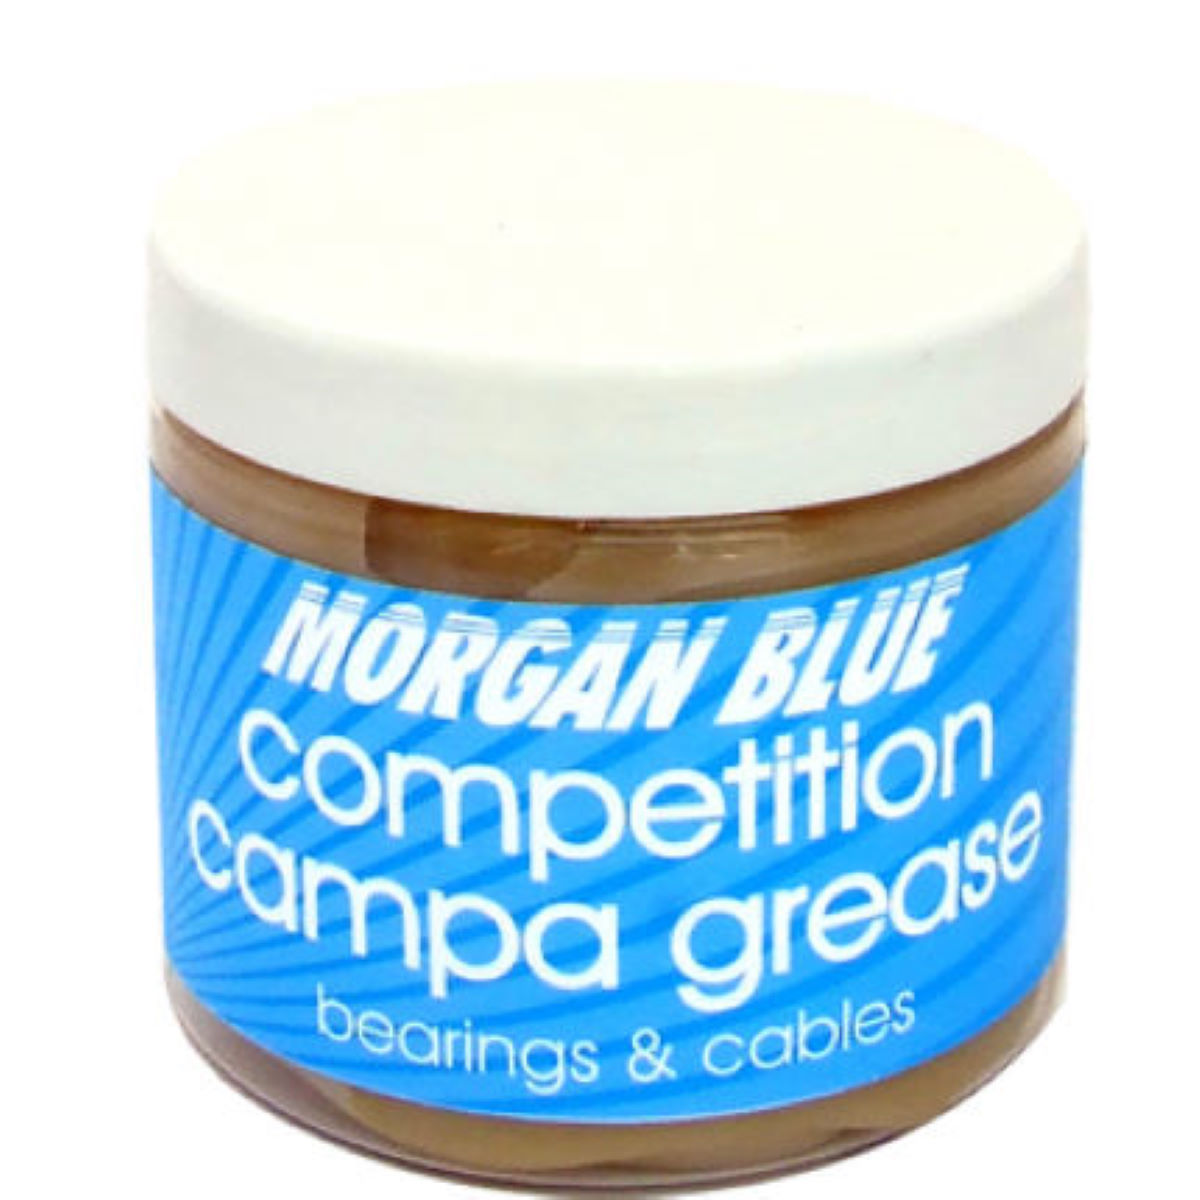 Grasa Morgan Blue Competition Campa (200 ml) - Lubricantes